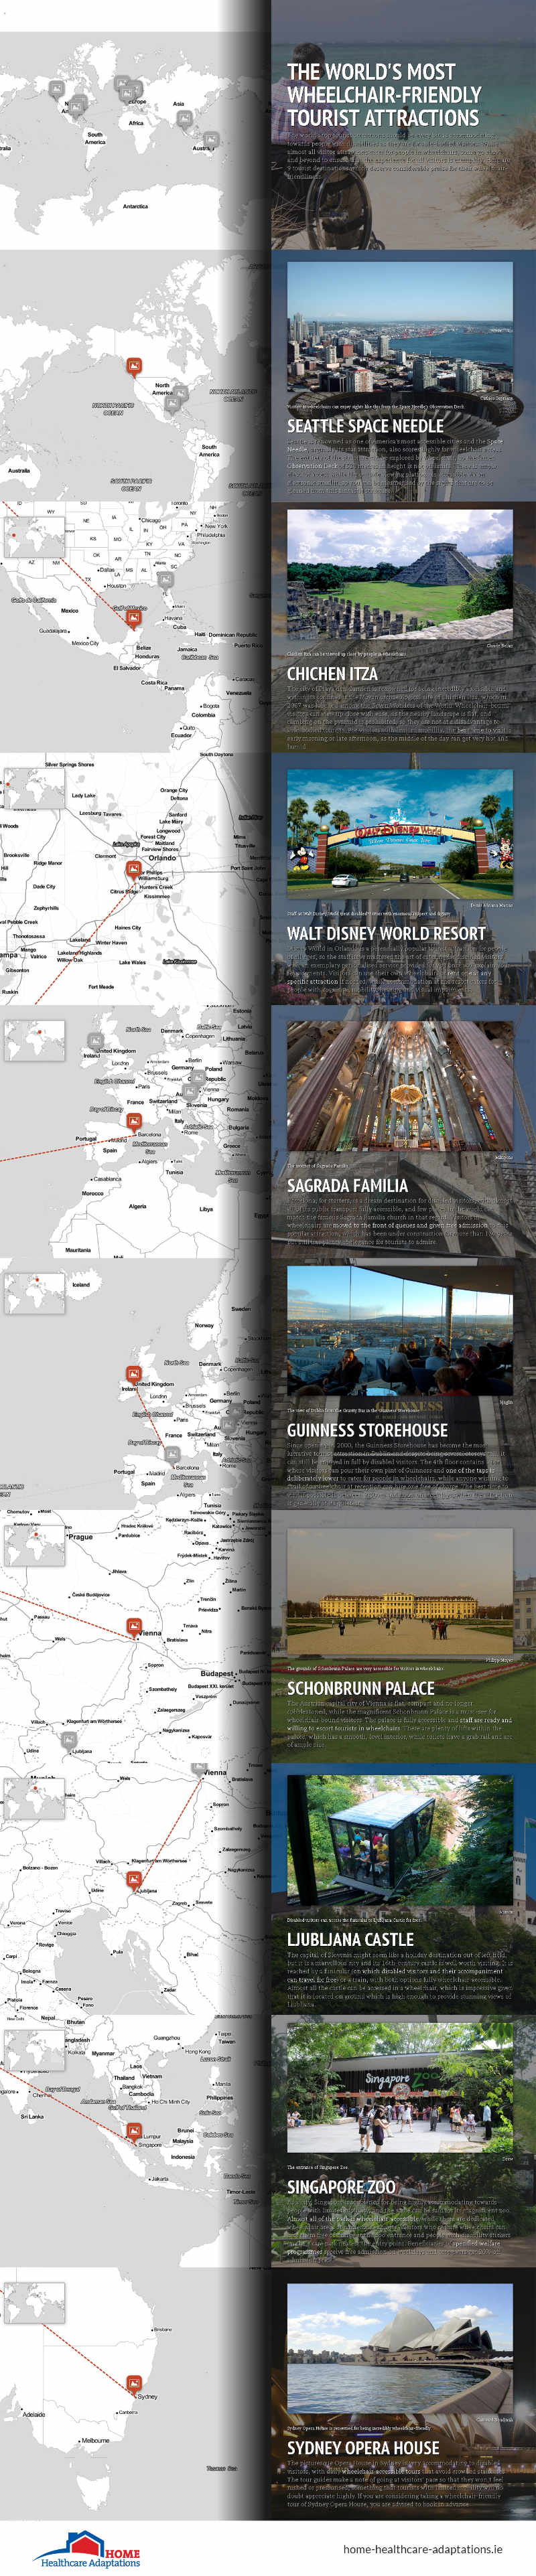 Infographic showing the world's most wheelchair-friendly tourist attractions